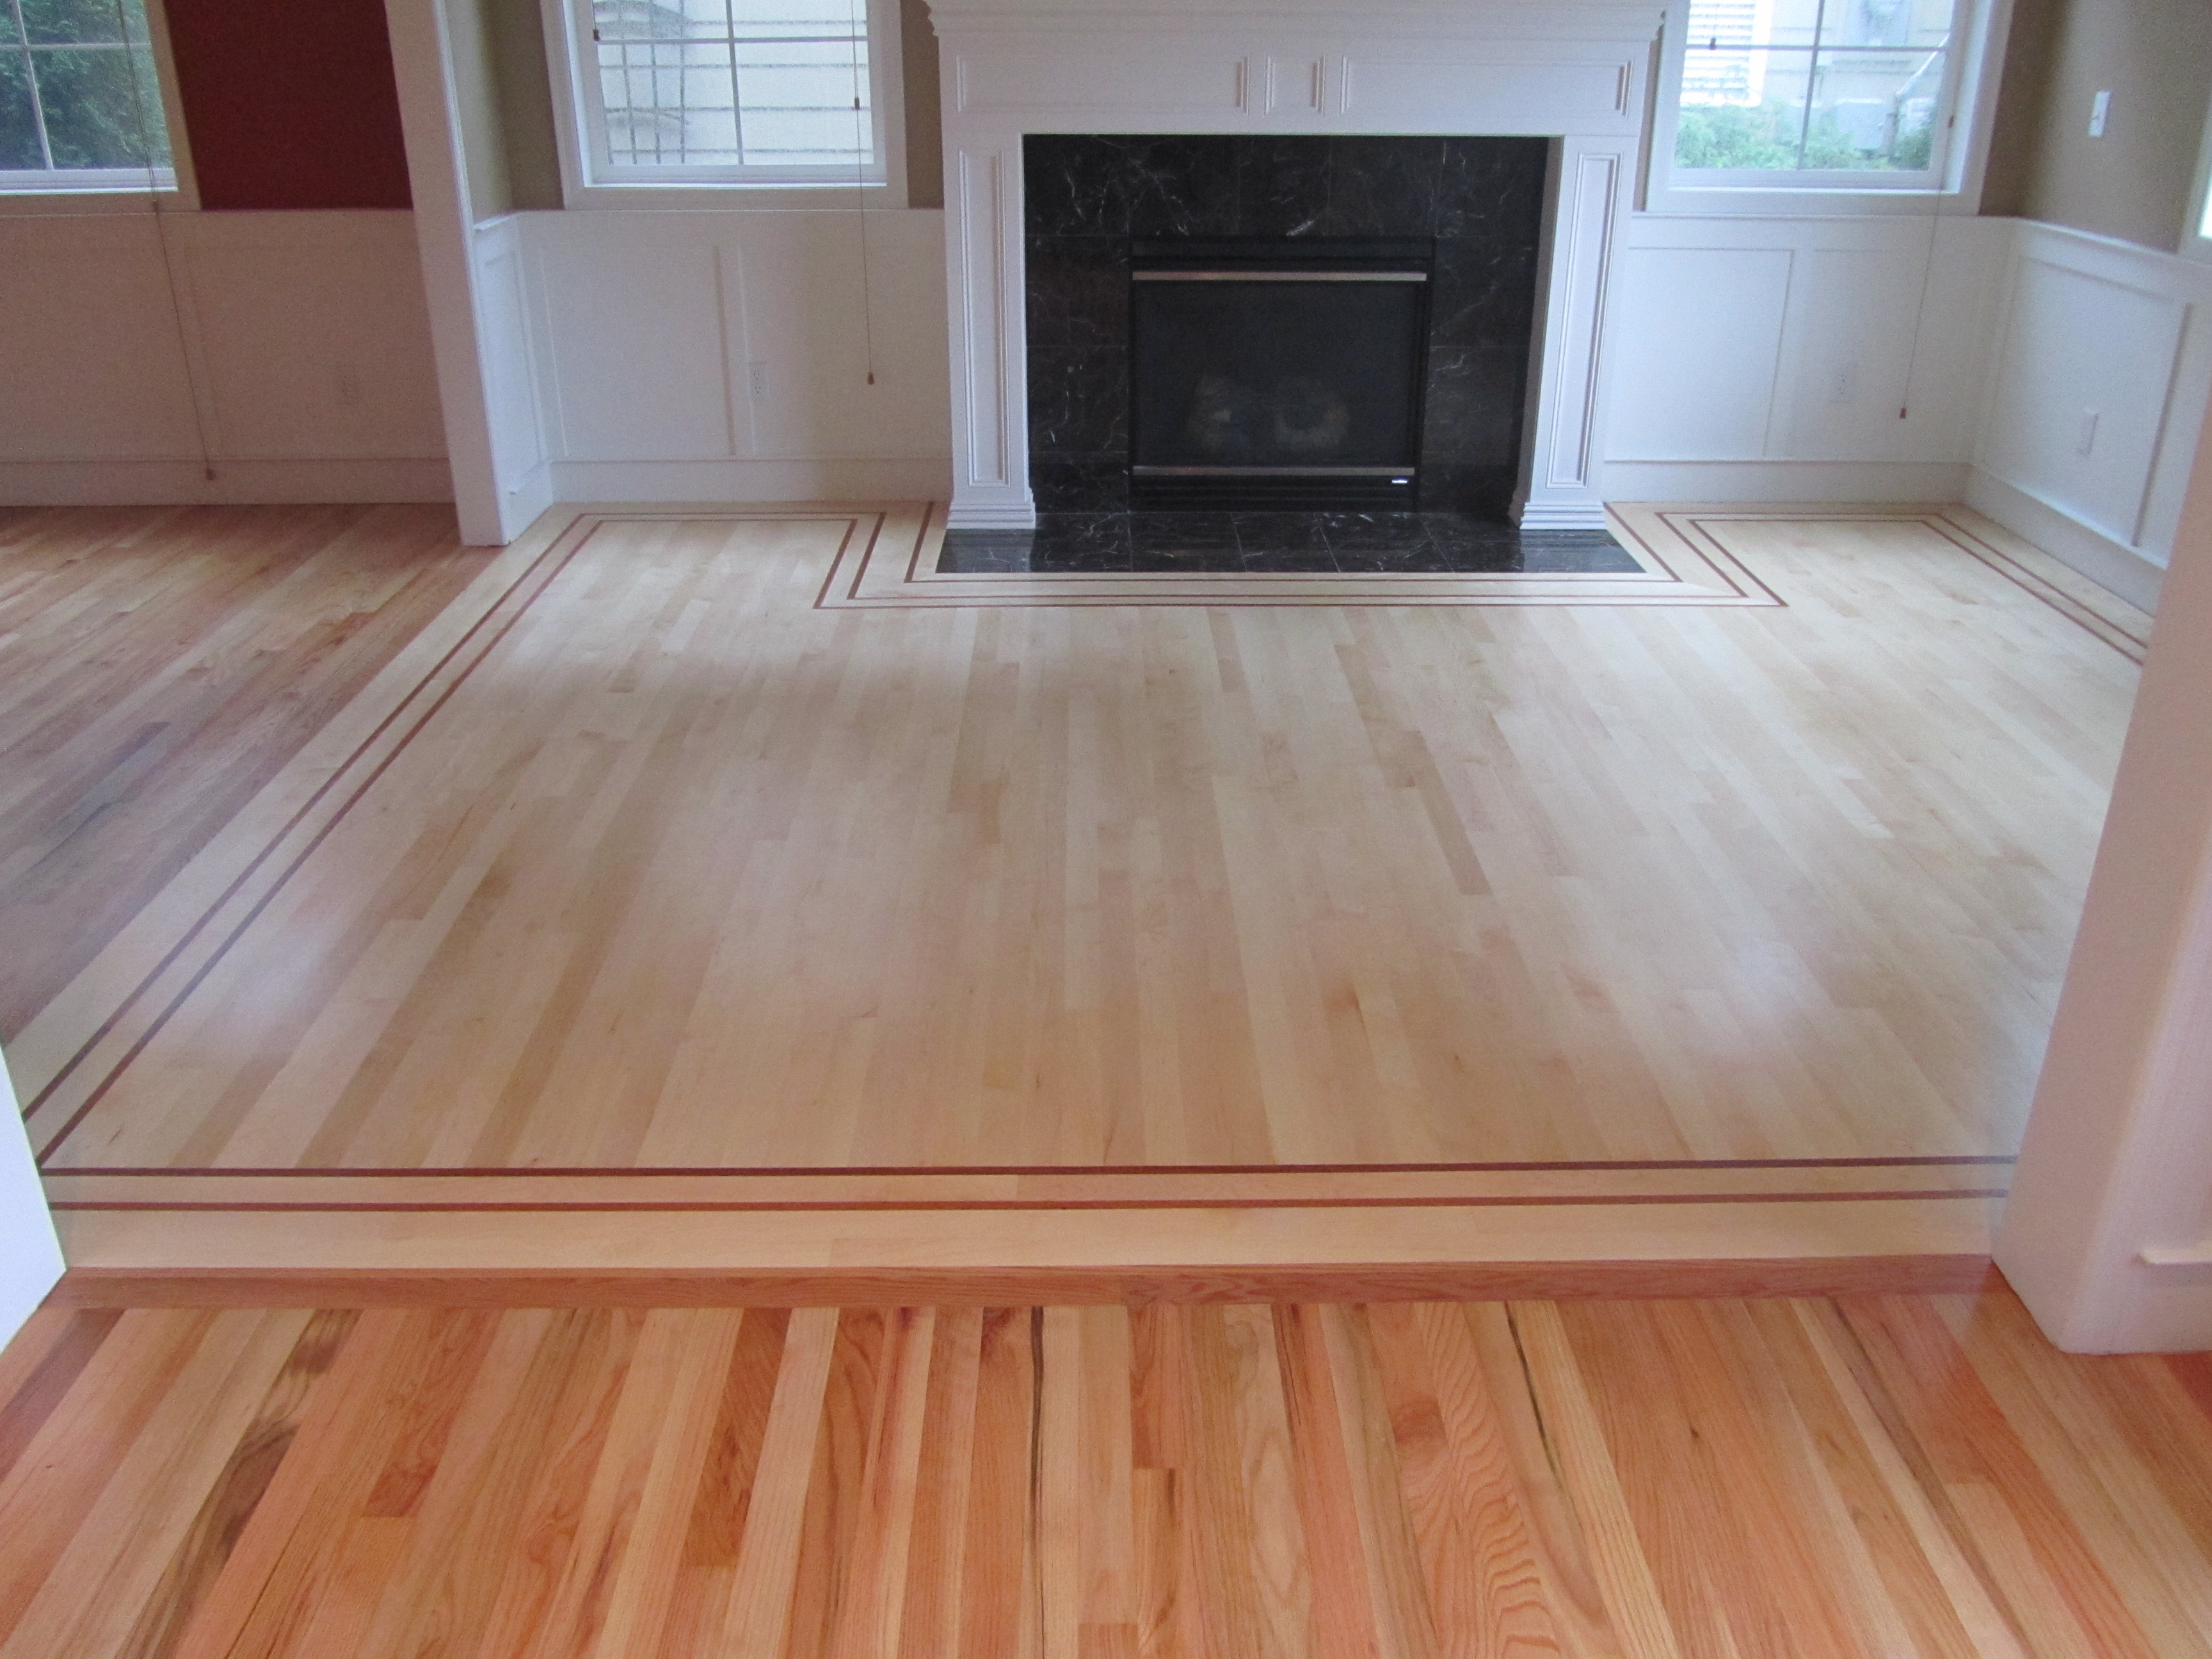 Hardwood Floor Refinishing Maryland Of Hardwood Floor Refinishing Richmond Va 4 White Oak Hardwood Floor Pertaining to Hardwood Floor Refinishing Richmond Va Hardwood Flooring Contractor